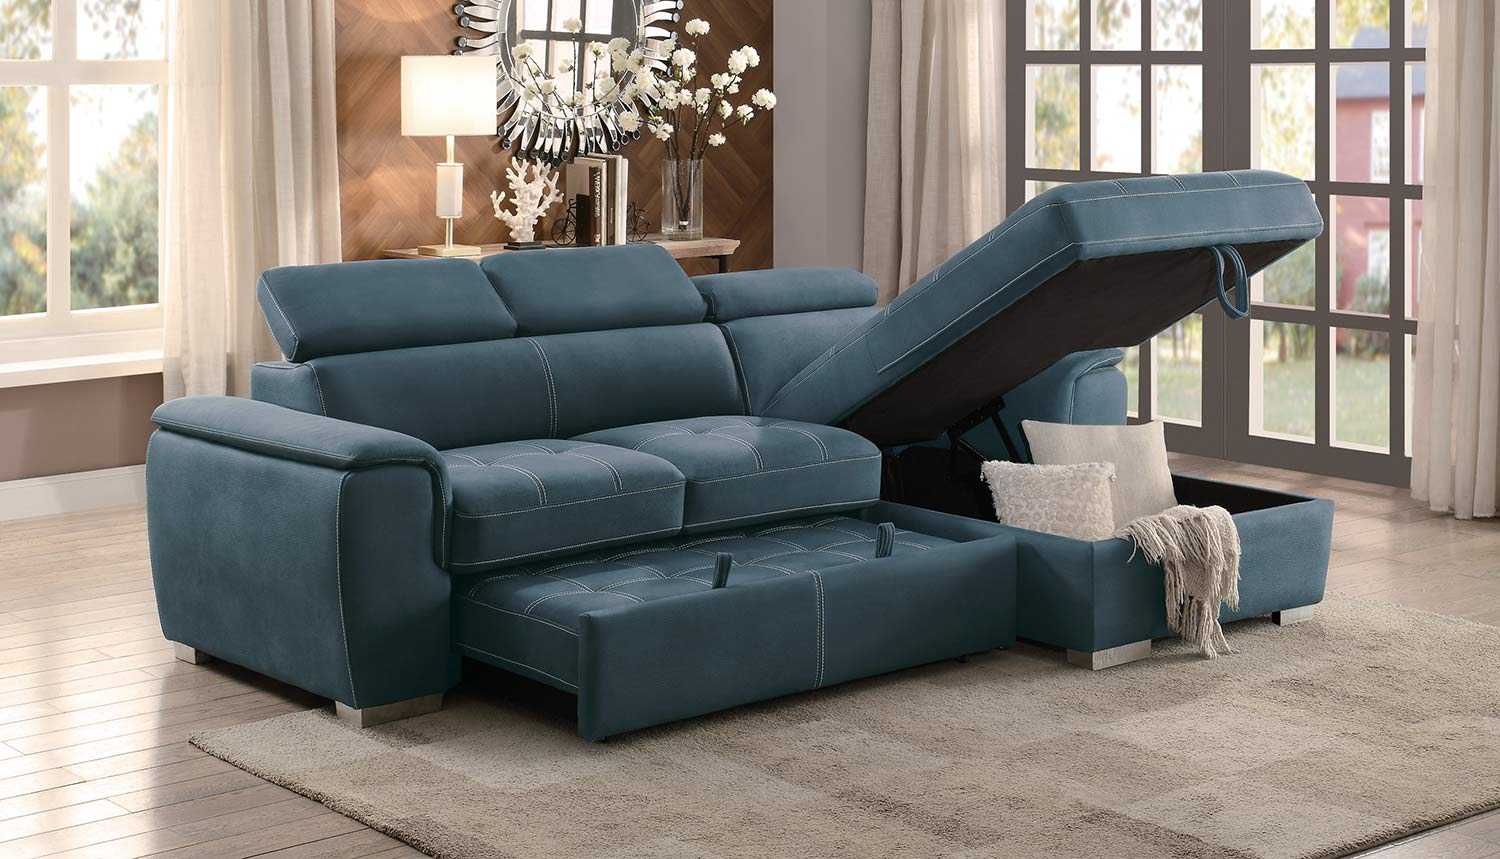 Homelegance Ferriday Reversible Sleeper Sectional With Hidden Storage Blue Fabric